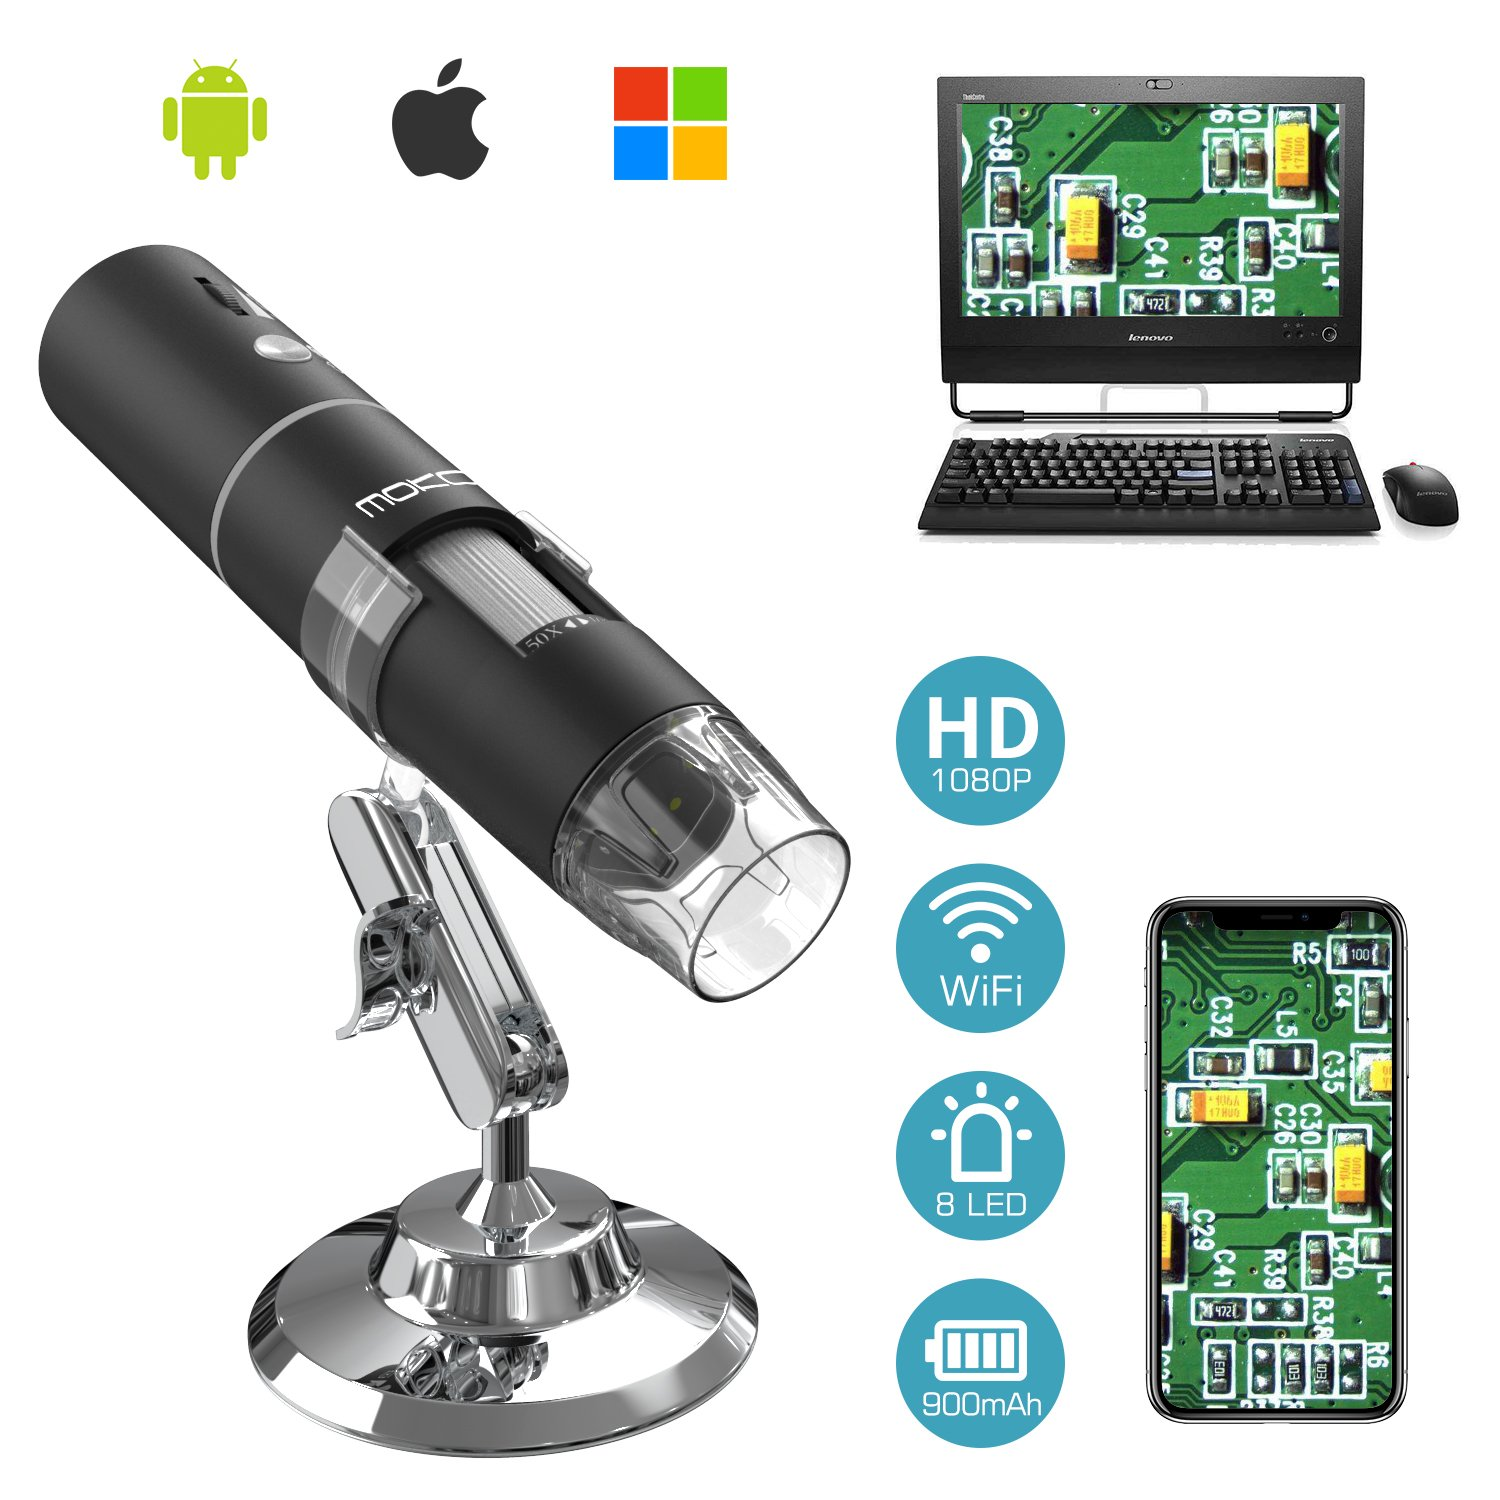 MoKo WiFi USB Digital Microscope, 1080P HD 2MP Camera, 50x to 1000x Magnification Mini Pocket Handheld Wireless Endoscope 8 LED, Metal Stand Compatible with iPhone/iPad/Mac/Window/Android/iOS - Black by MoKo